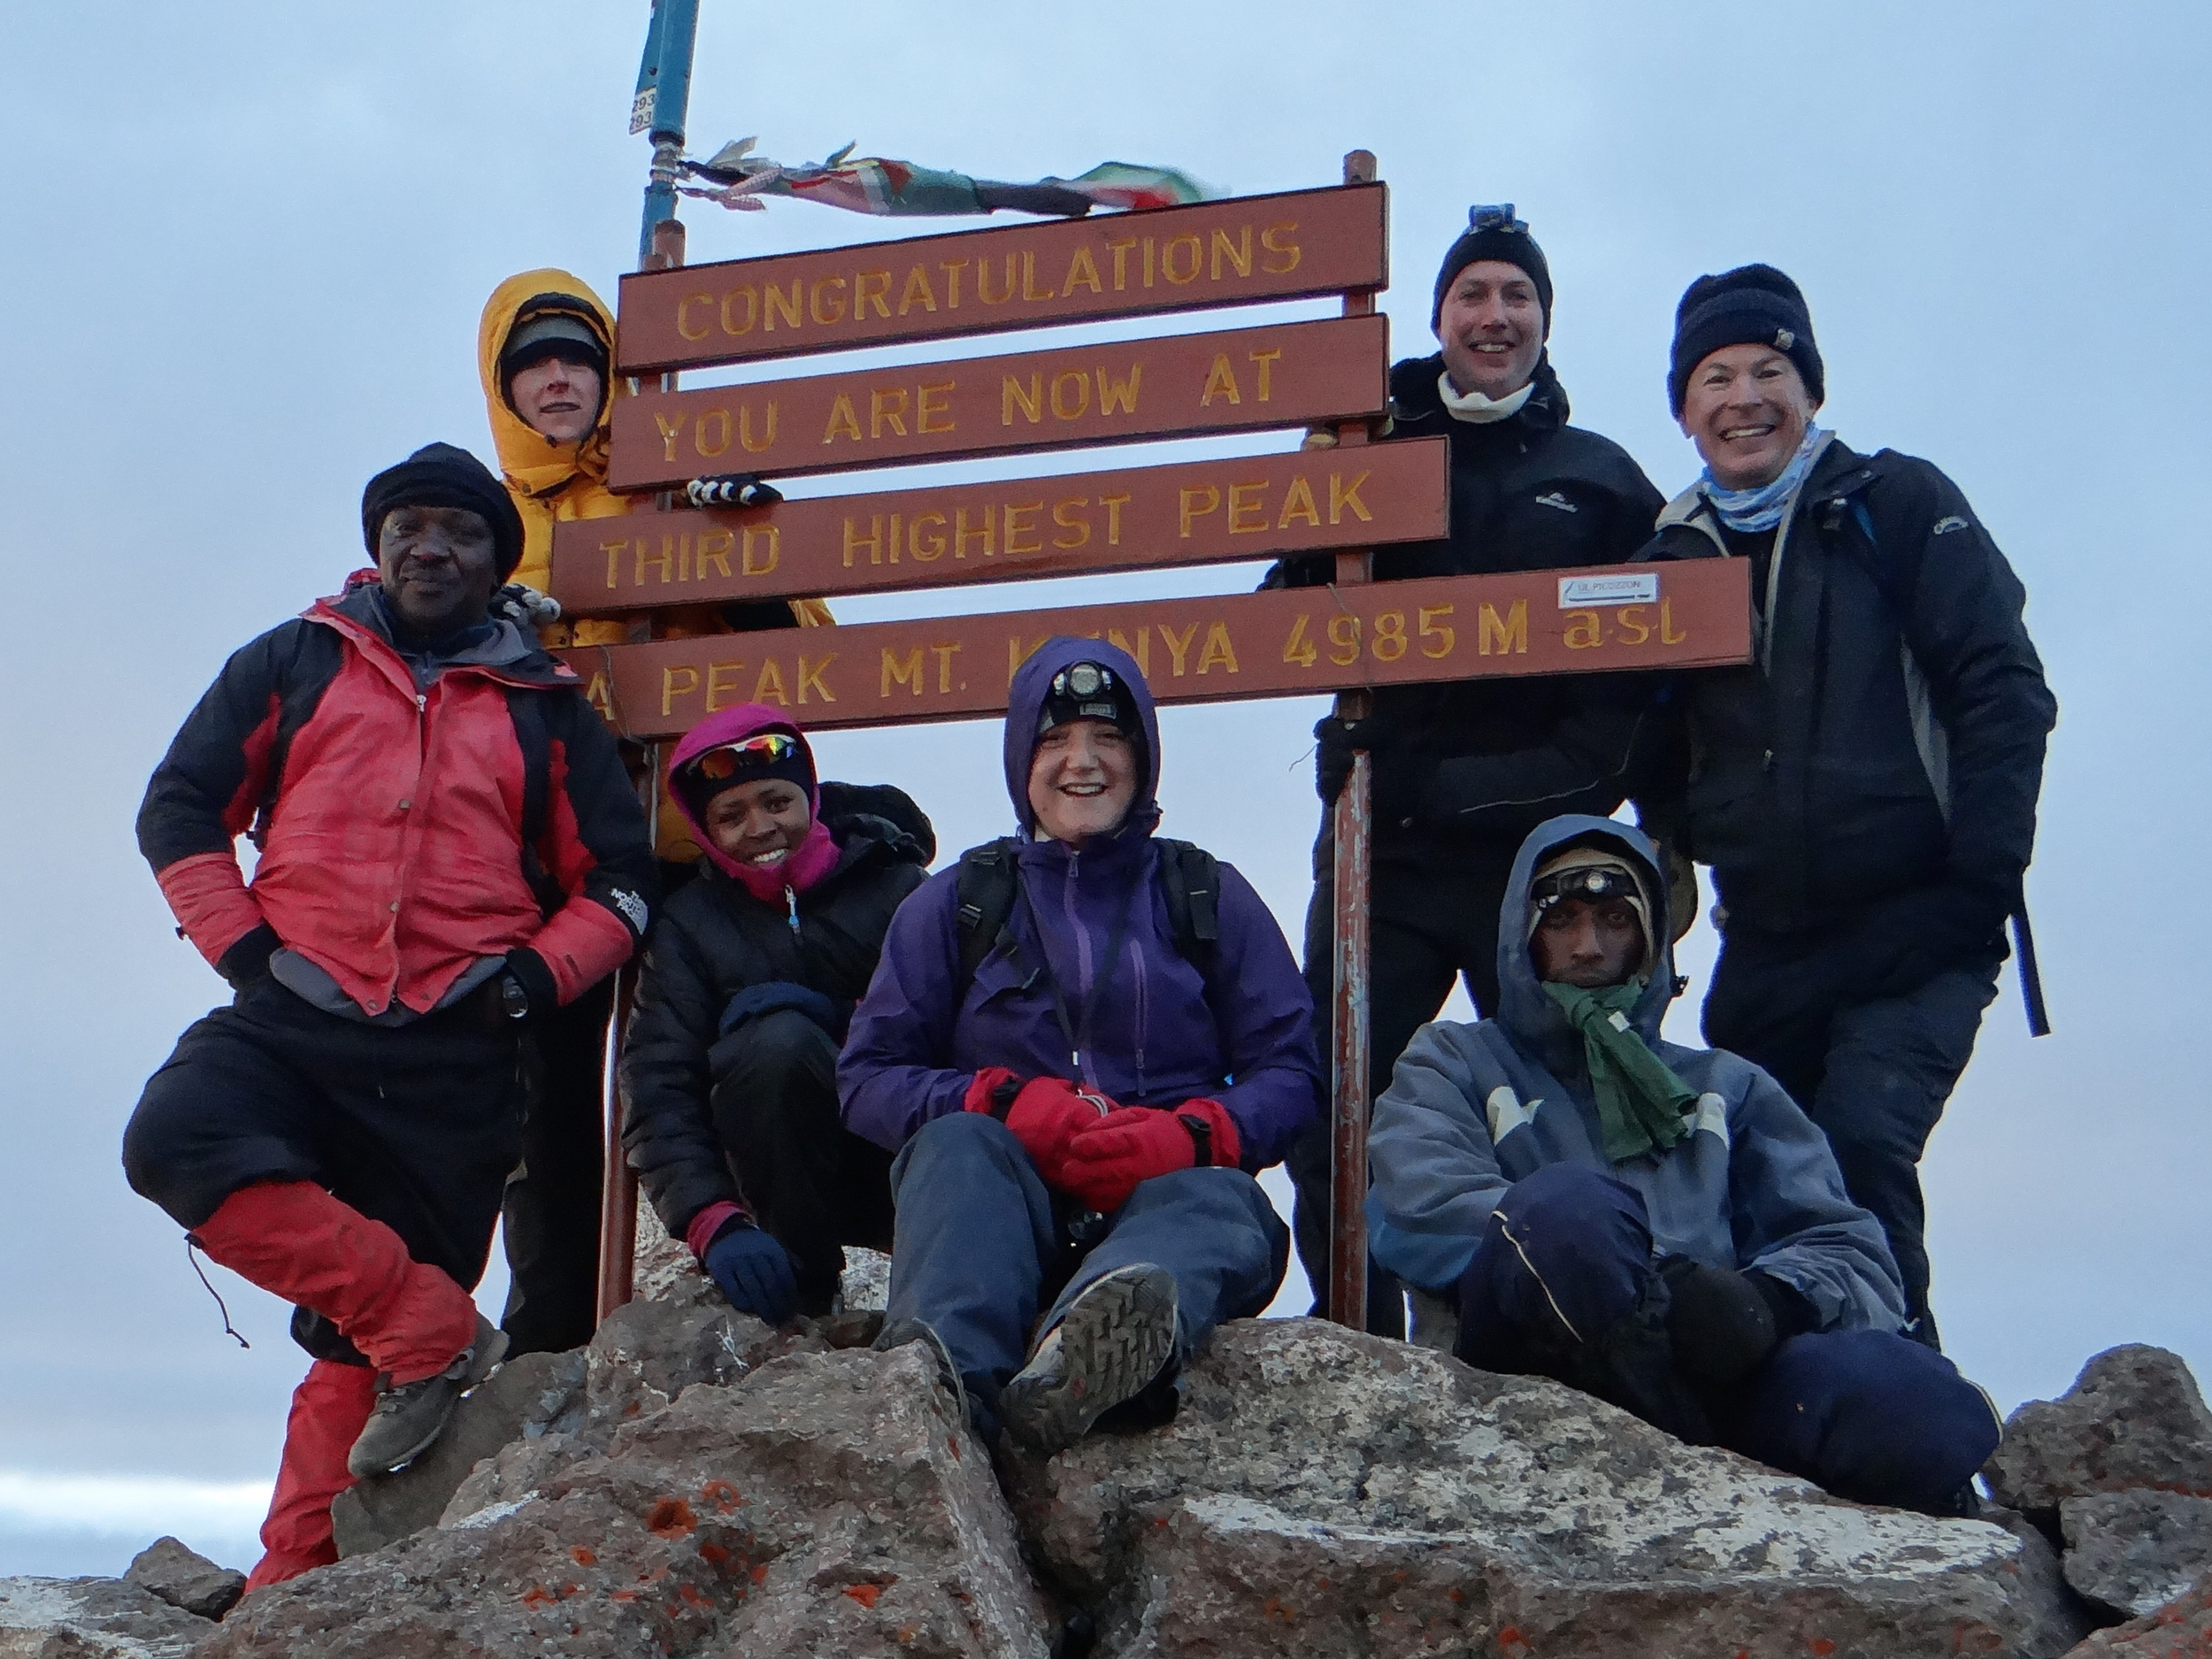 We reach the summit of Mount Kenya